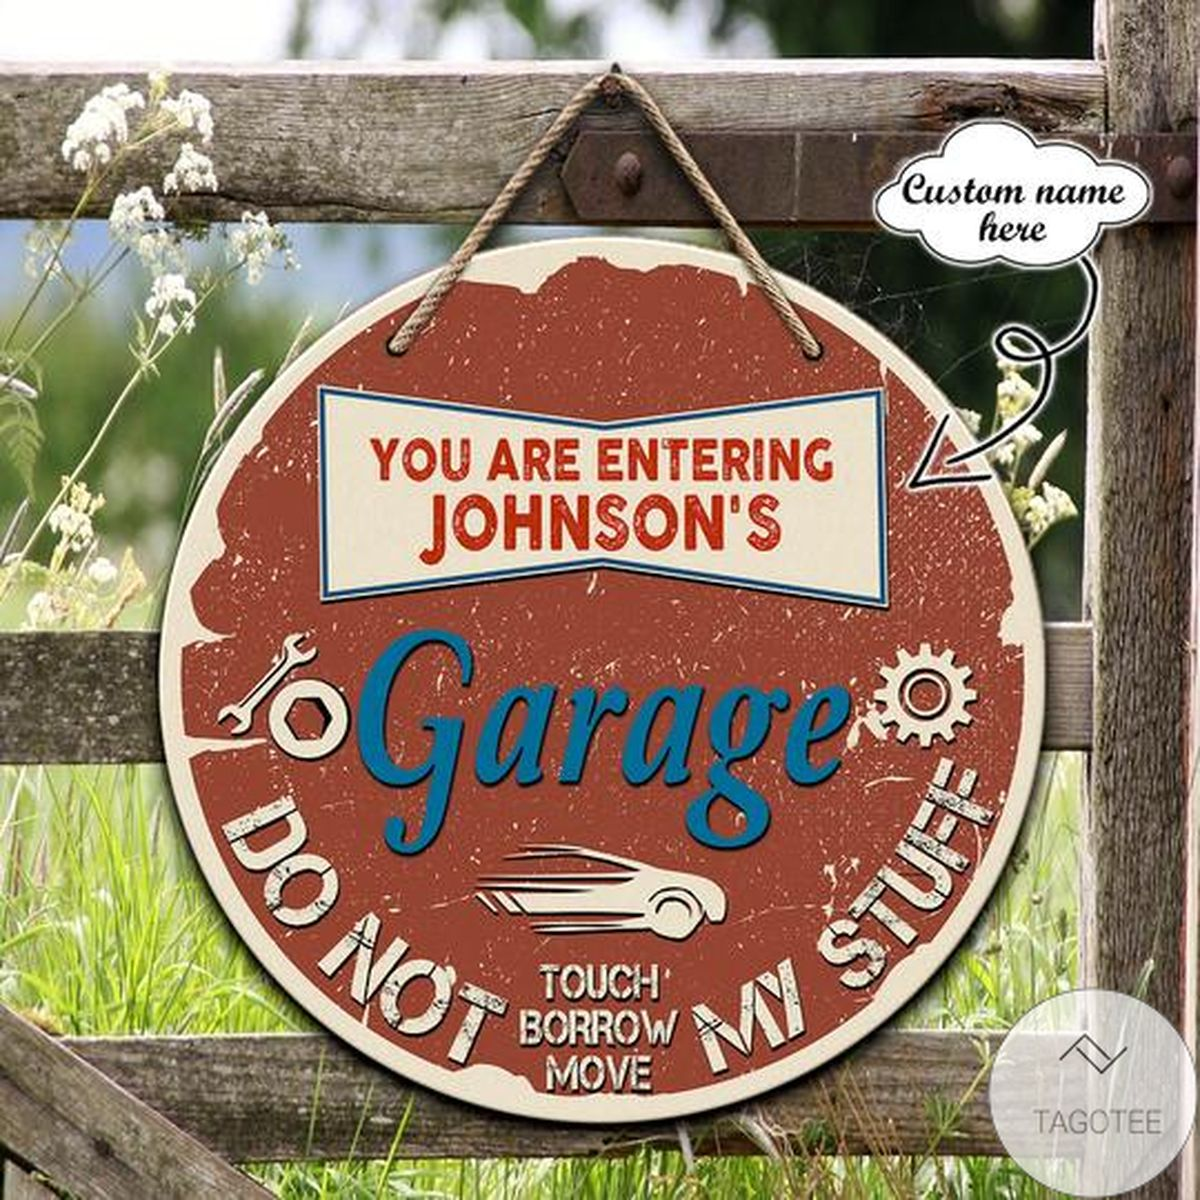 Personalized Garage Do Not Touch Borrow Move My Stuff Round Wooden Sign